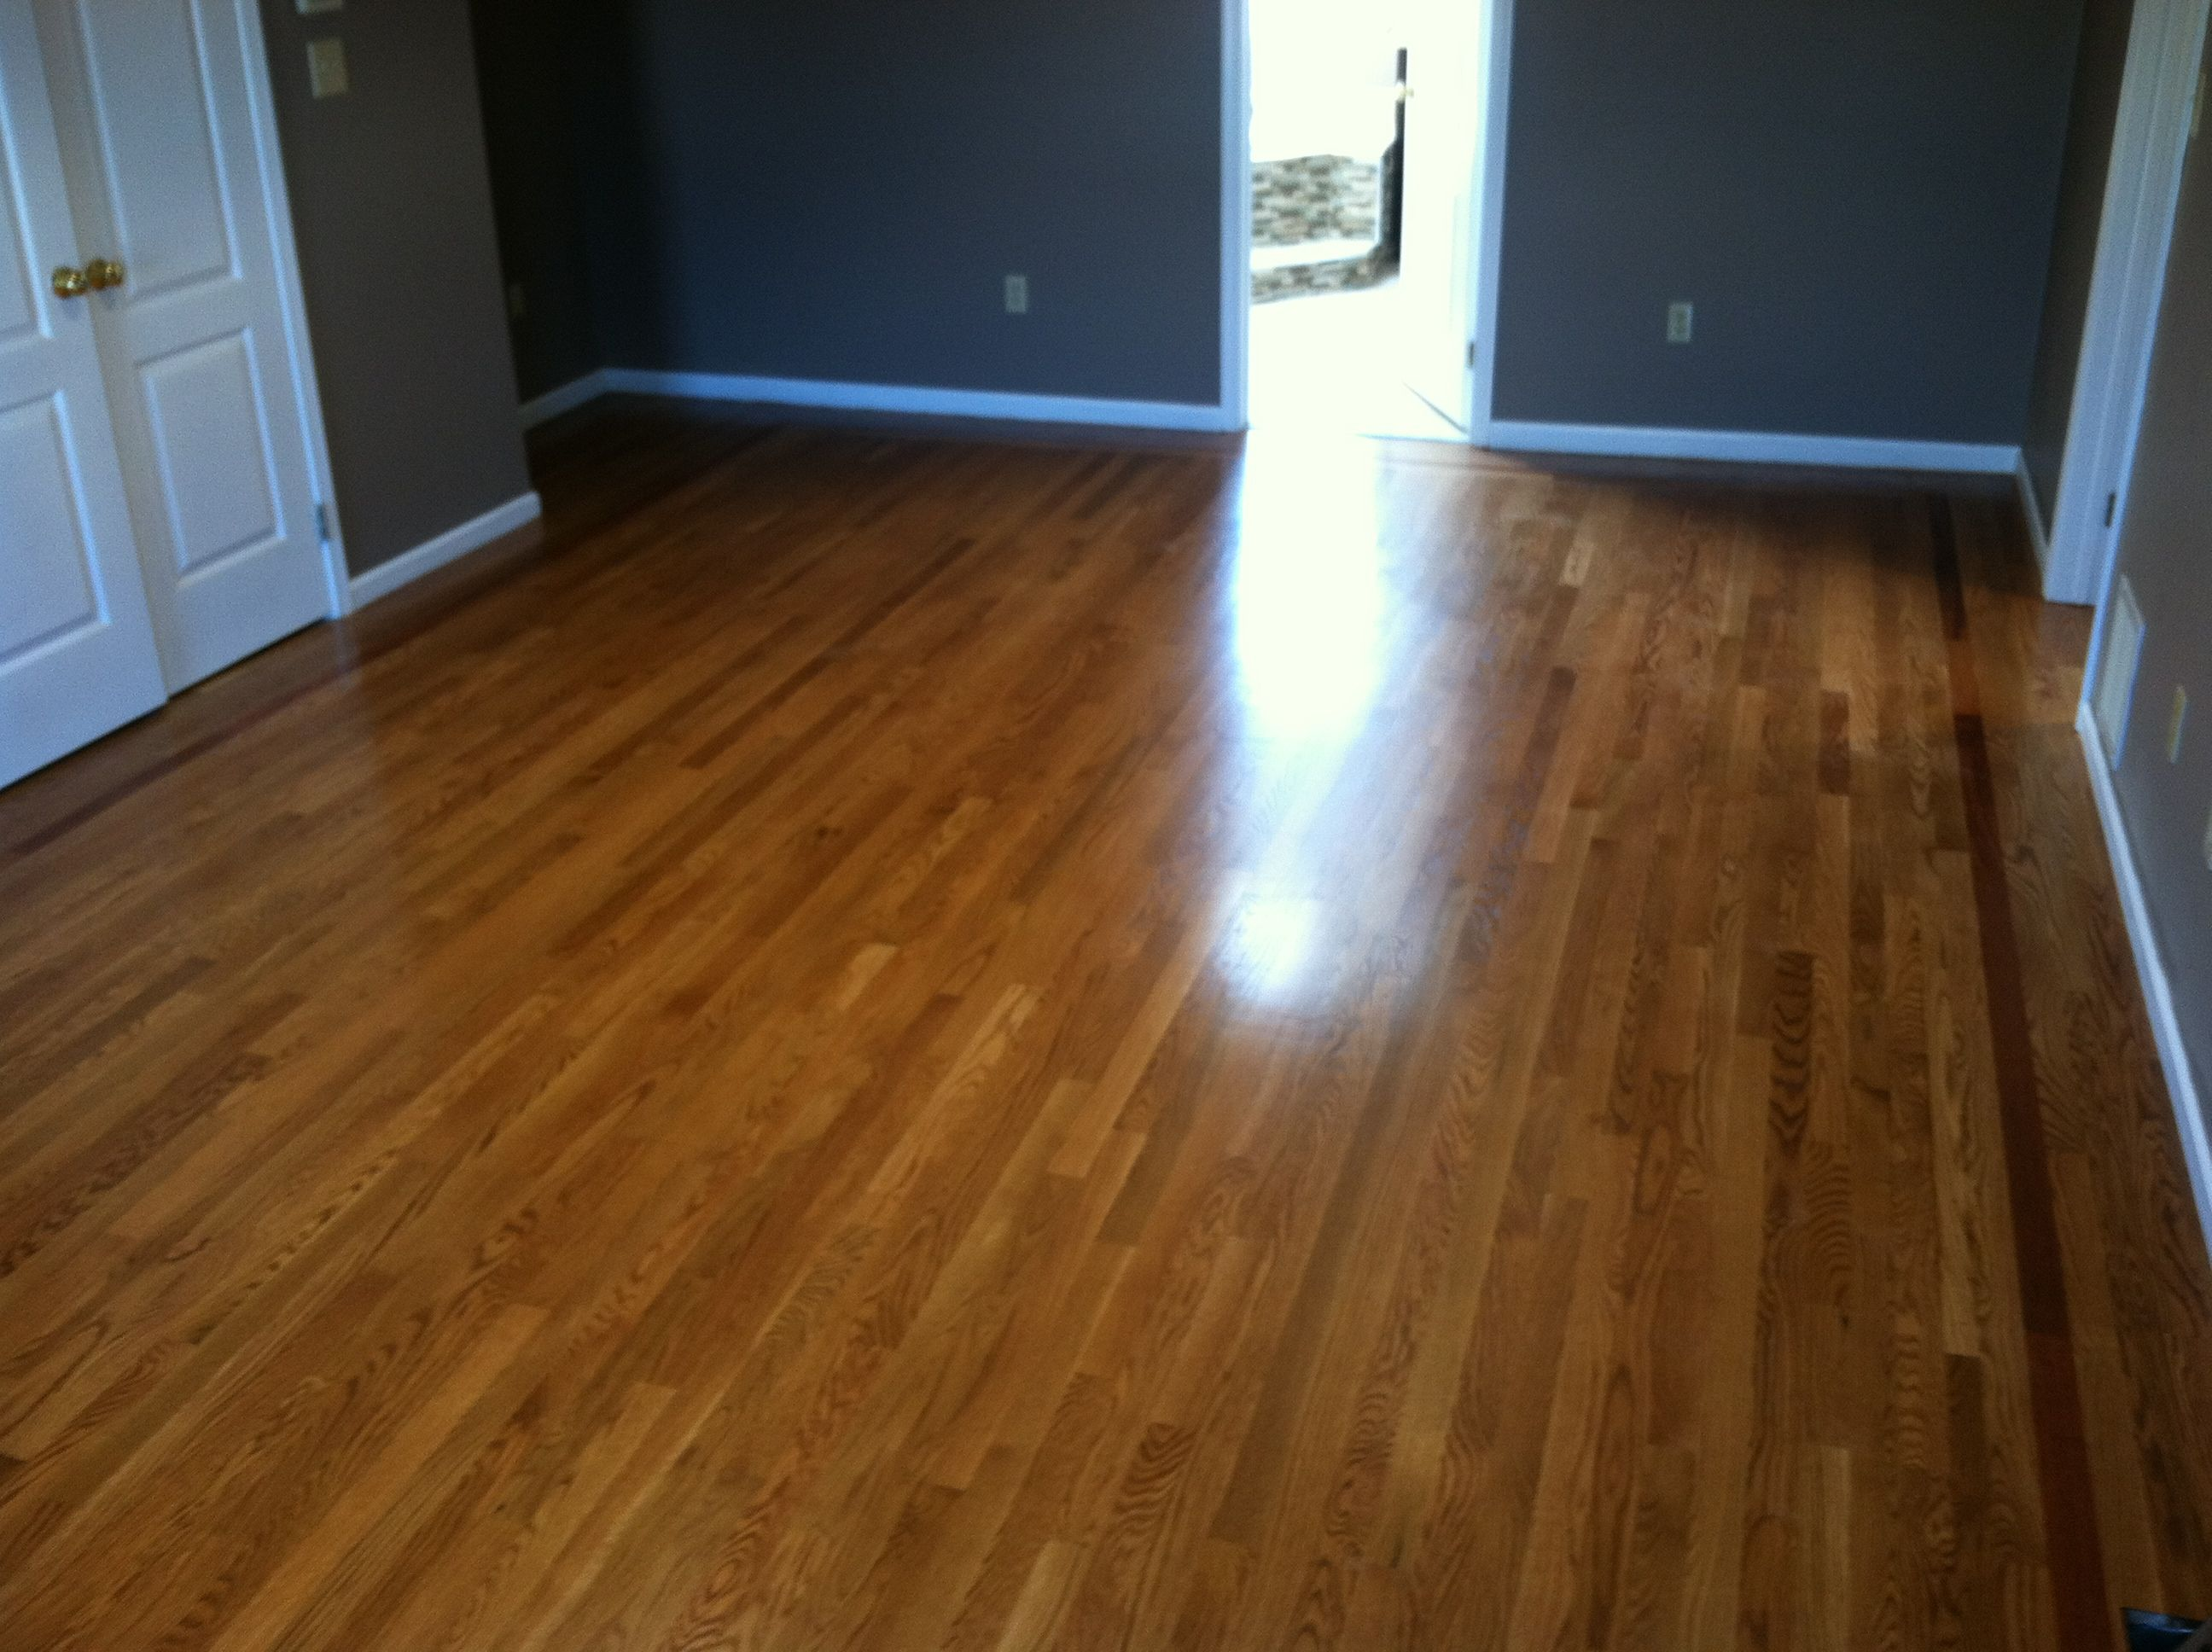 Wood stain colors images of stained wood floors - Wood floor colors ...